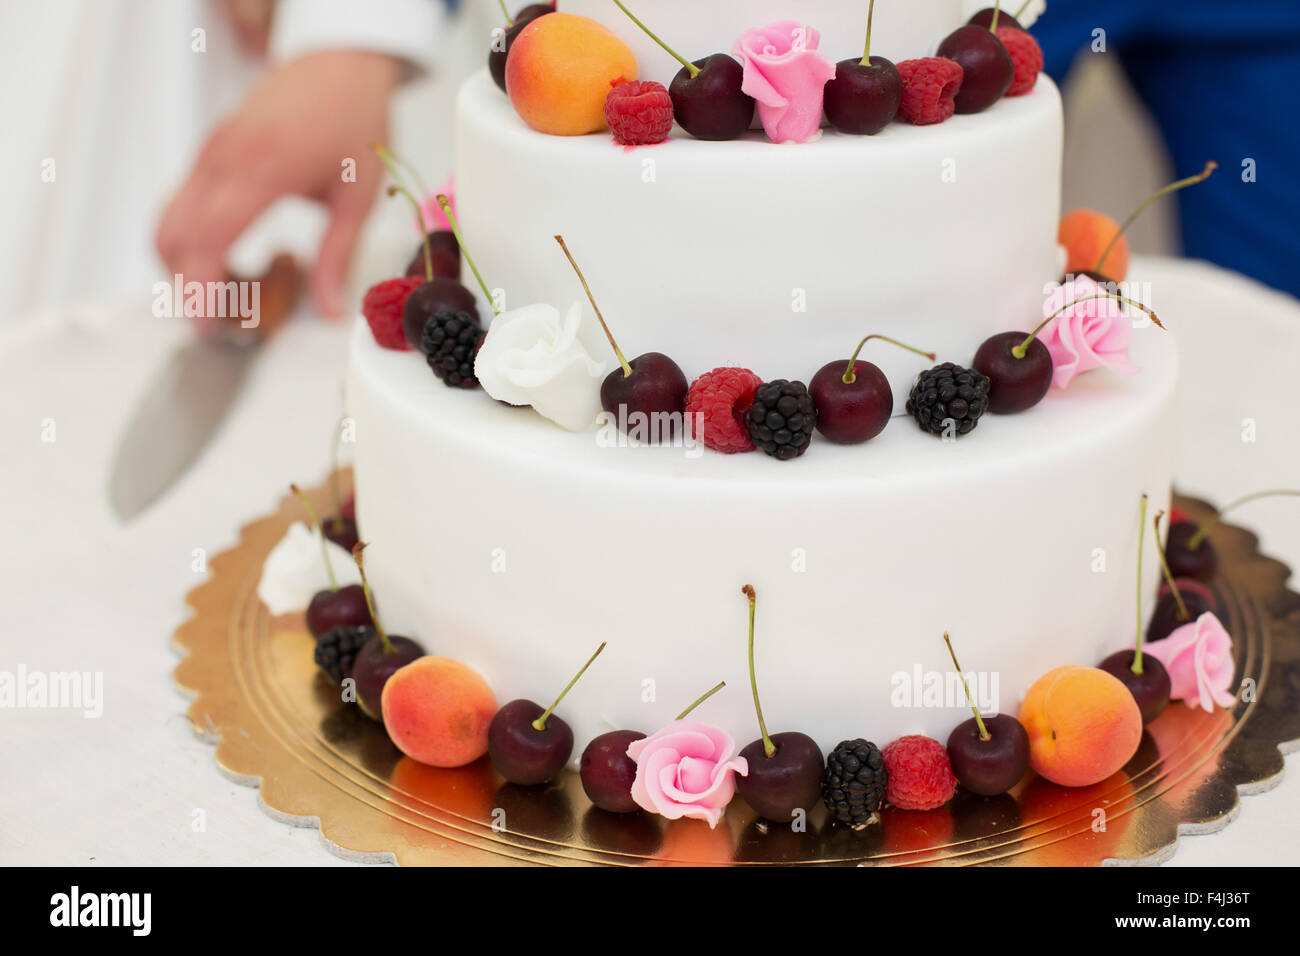 Wedding Cake Cut Stock Photos & Wedding Cake Cut Stock Images - Alamy